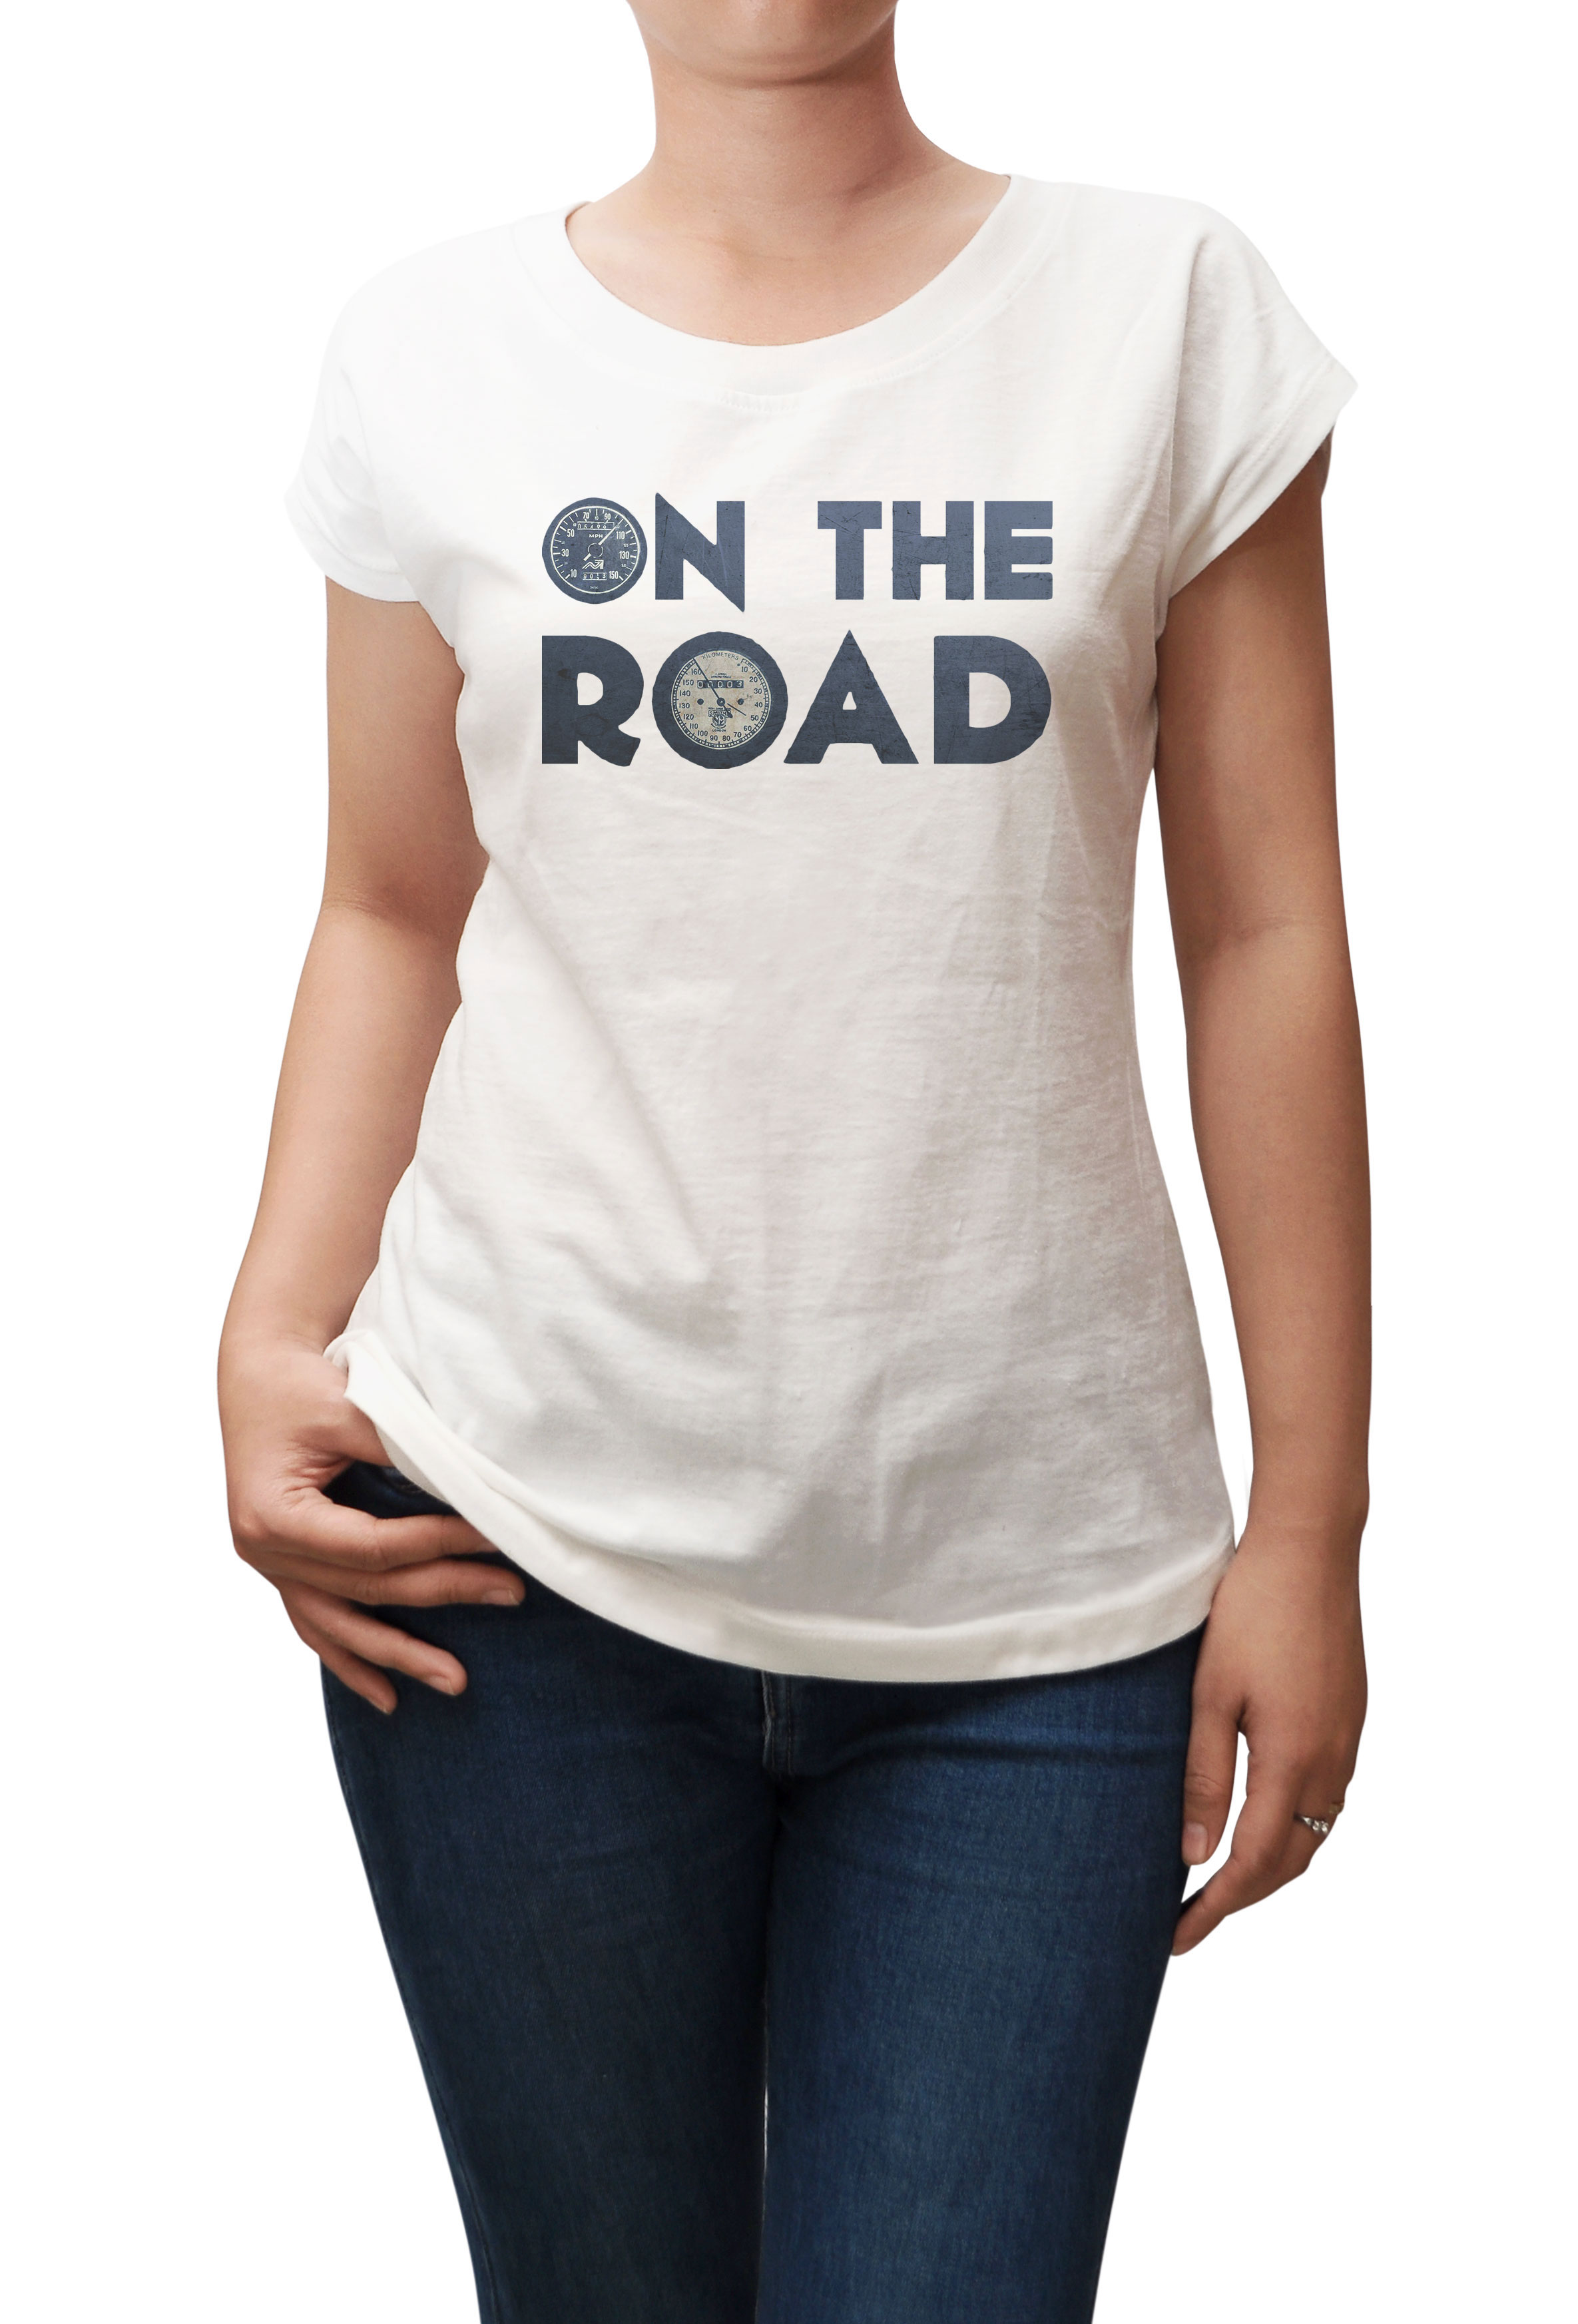 On The Road Printed 100% Cotton Fashion Casual Wear T-shirt Plus Size WTS_02 L